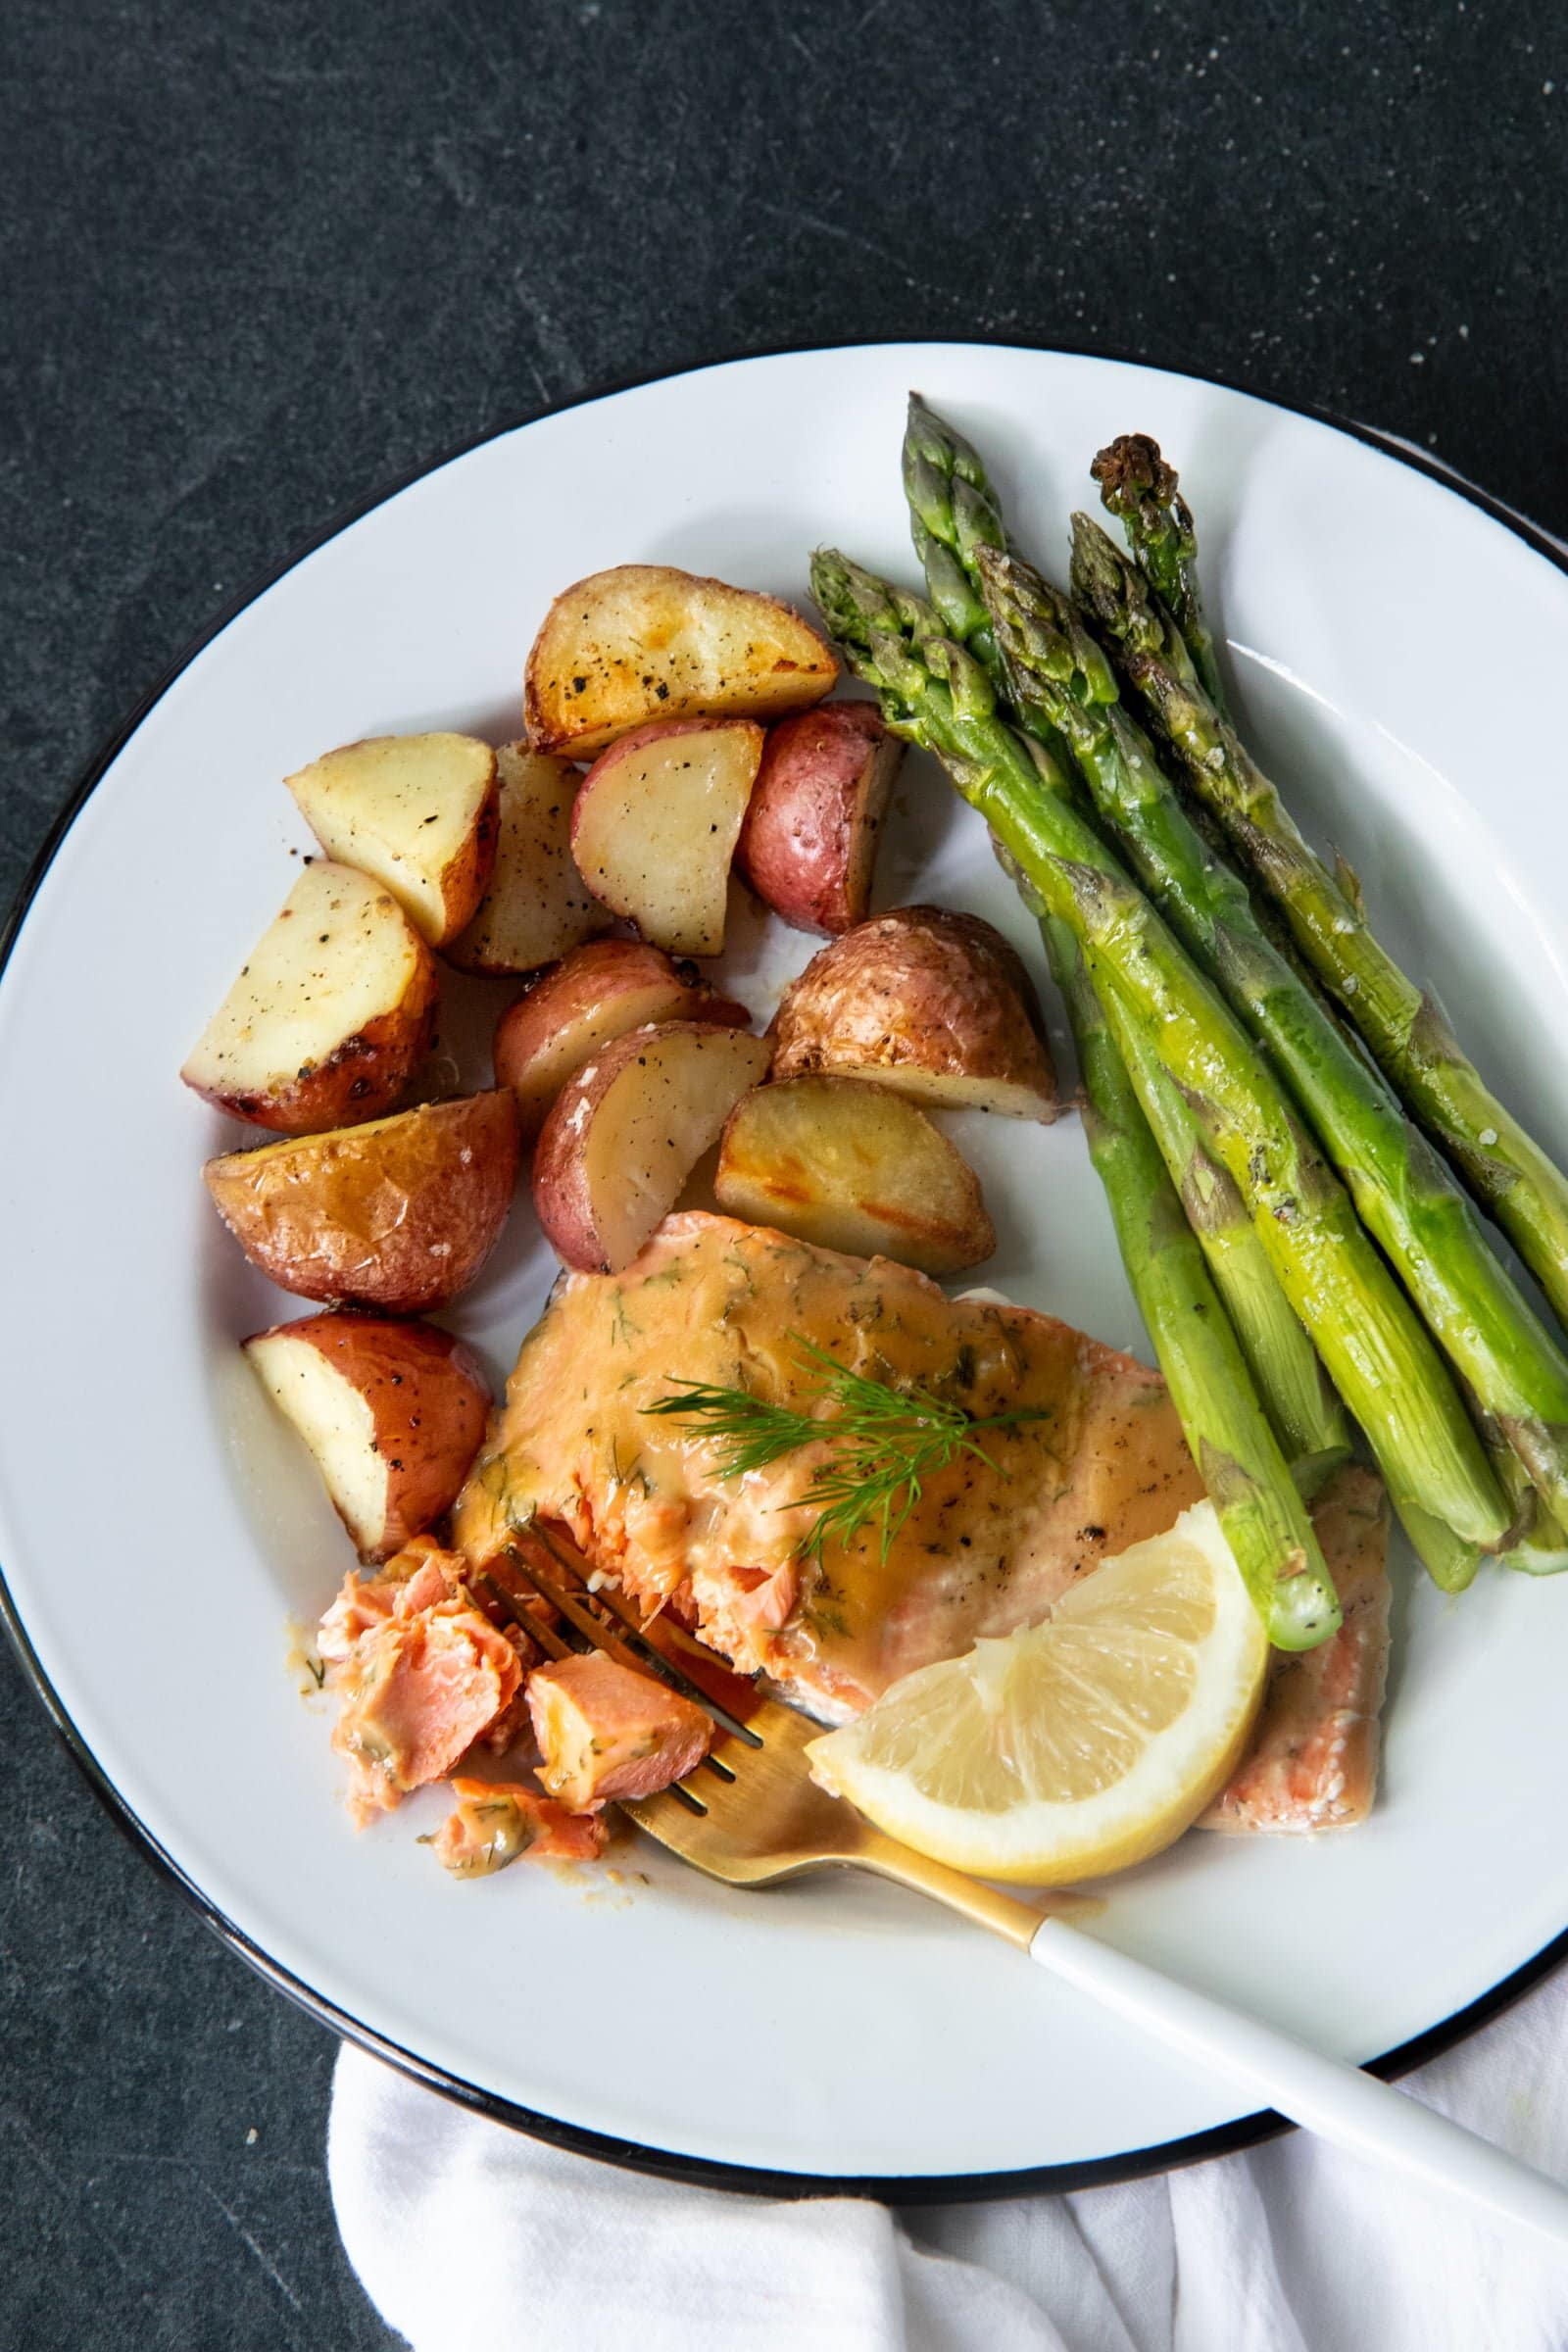 Mustard Maple Glazed Salmon, roasted asparagus, and roasted potatoes on a white plate with a fork.